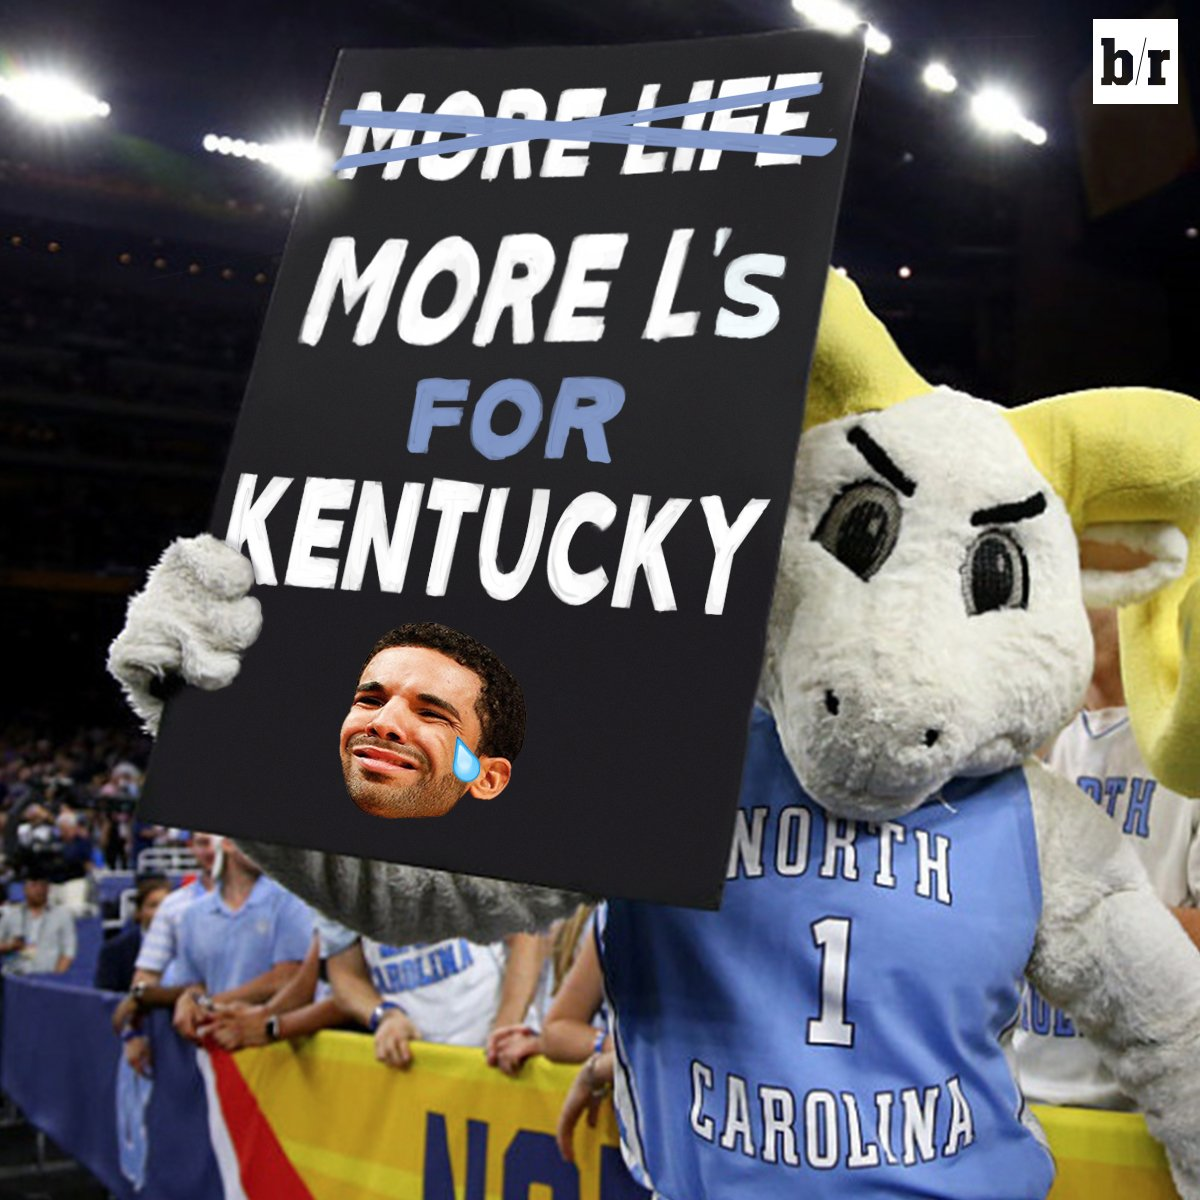 UNC punches its ticket to the Final Four! https://t.co/wJcz0Y2Gf4